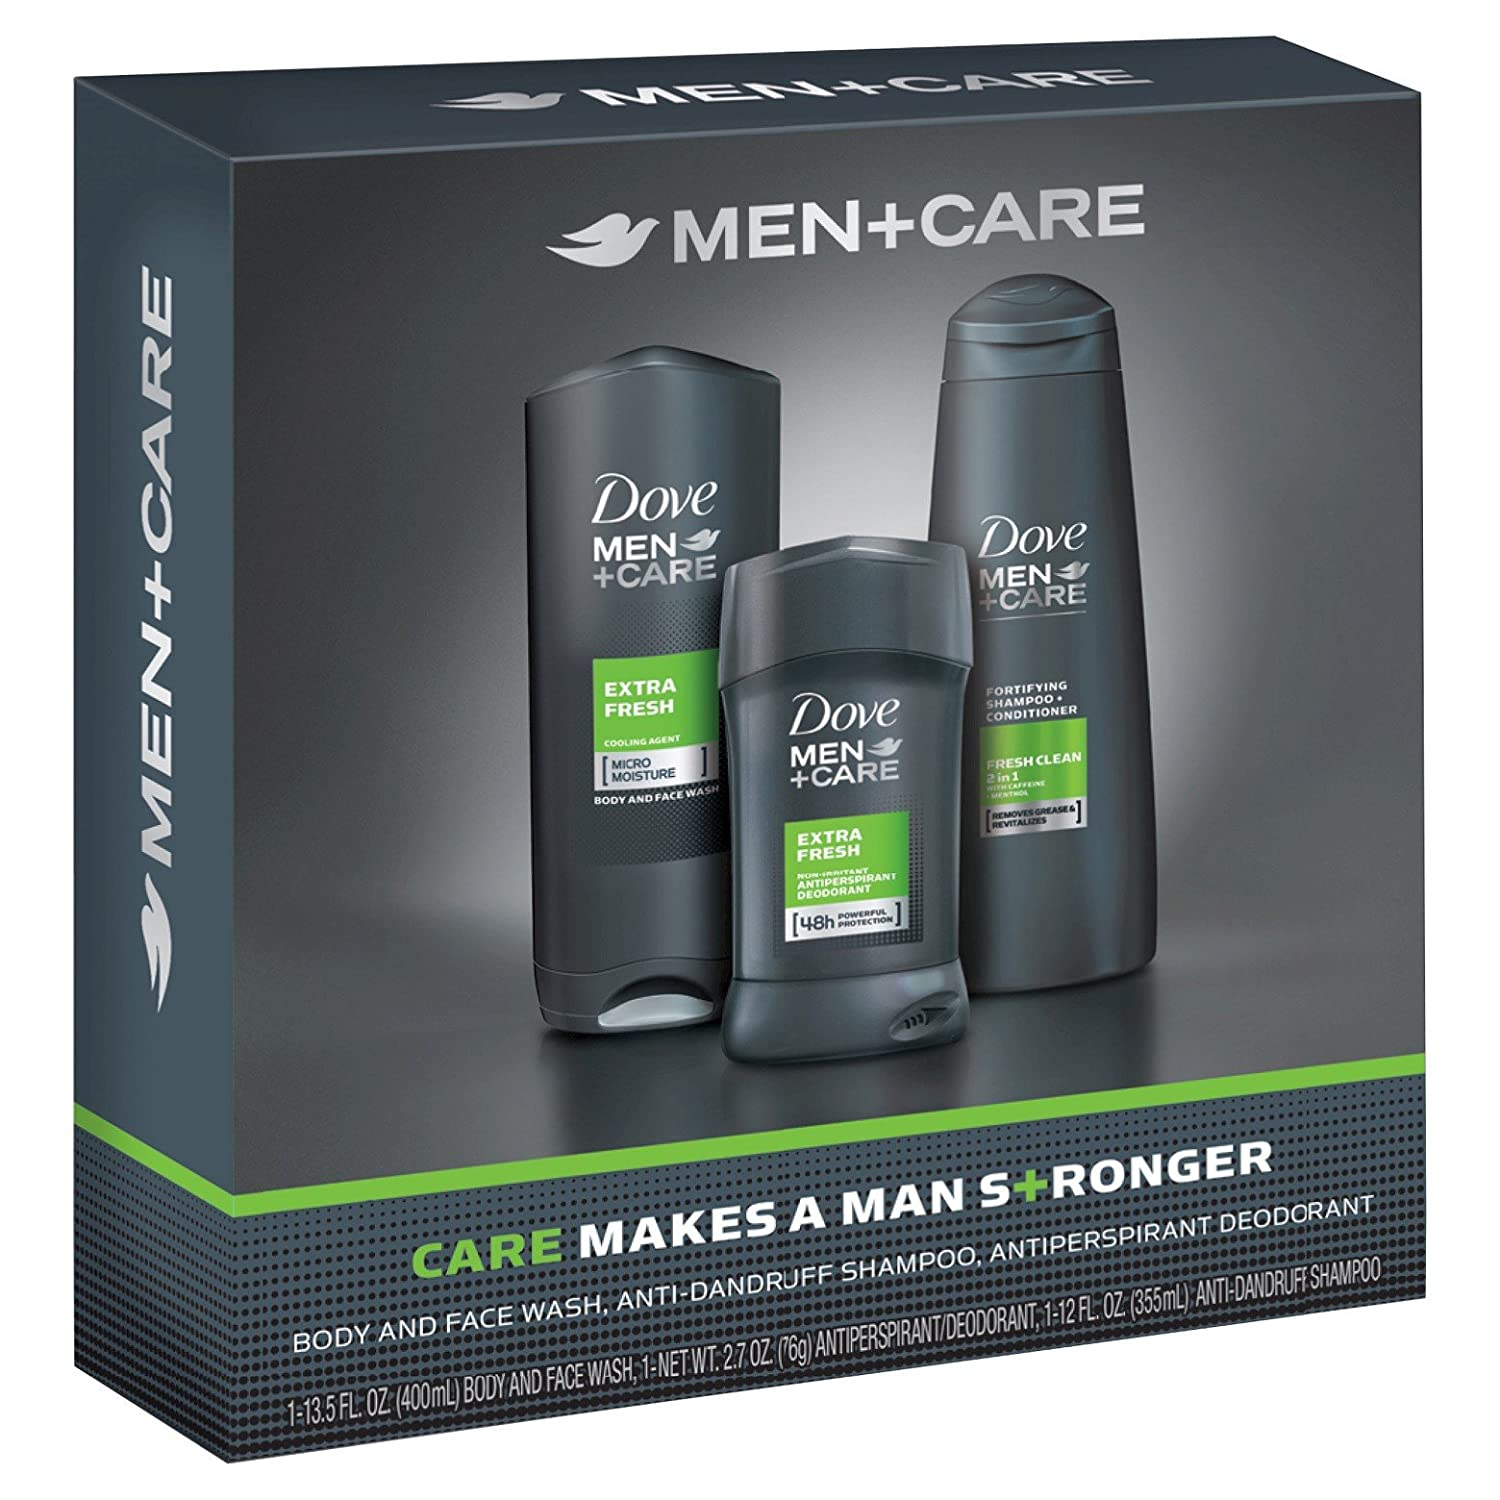 Dove Men+Care Extra Fresh Bath and Body Gift Set (3Pcs) Unilever